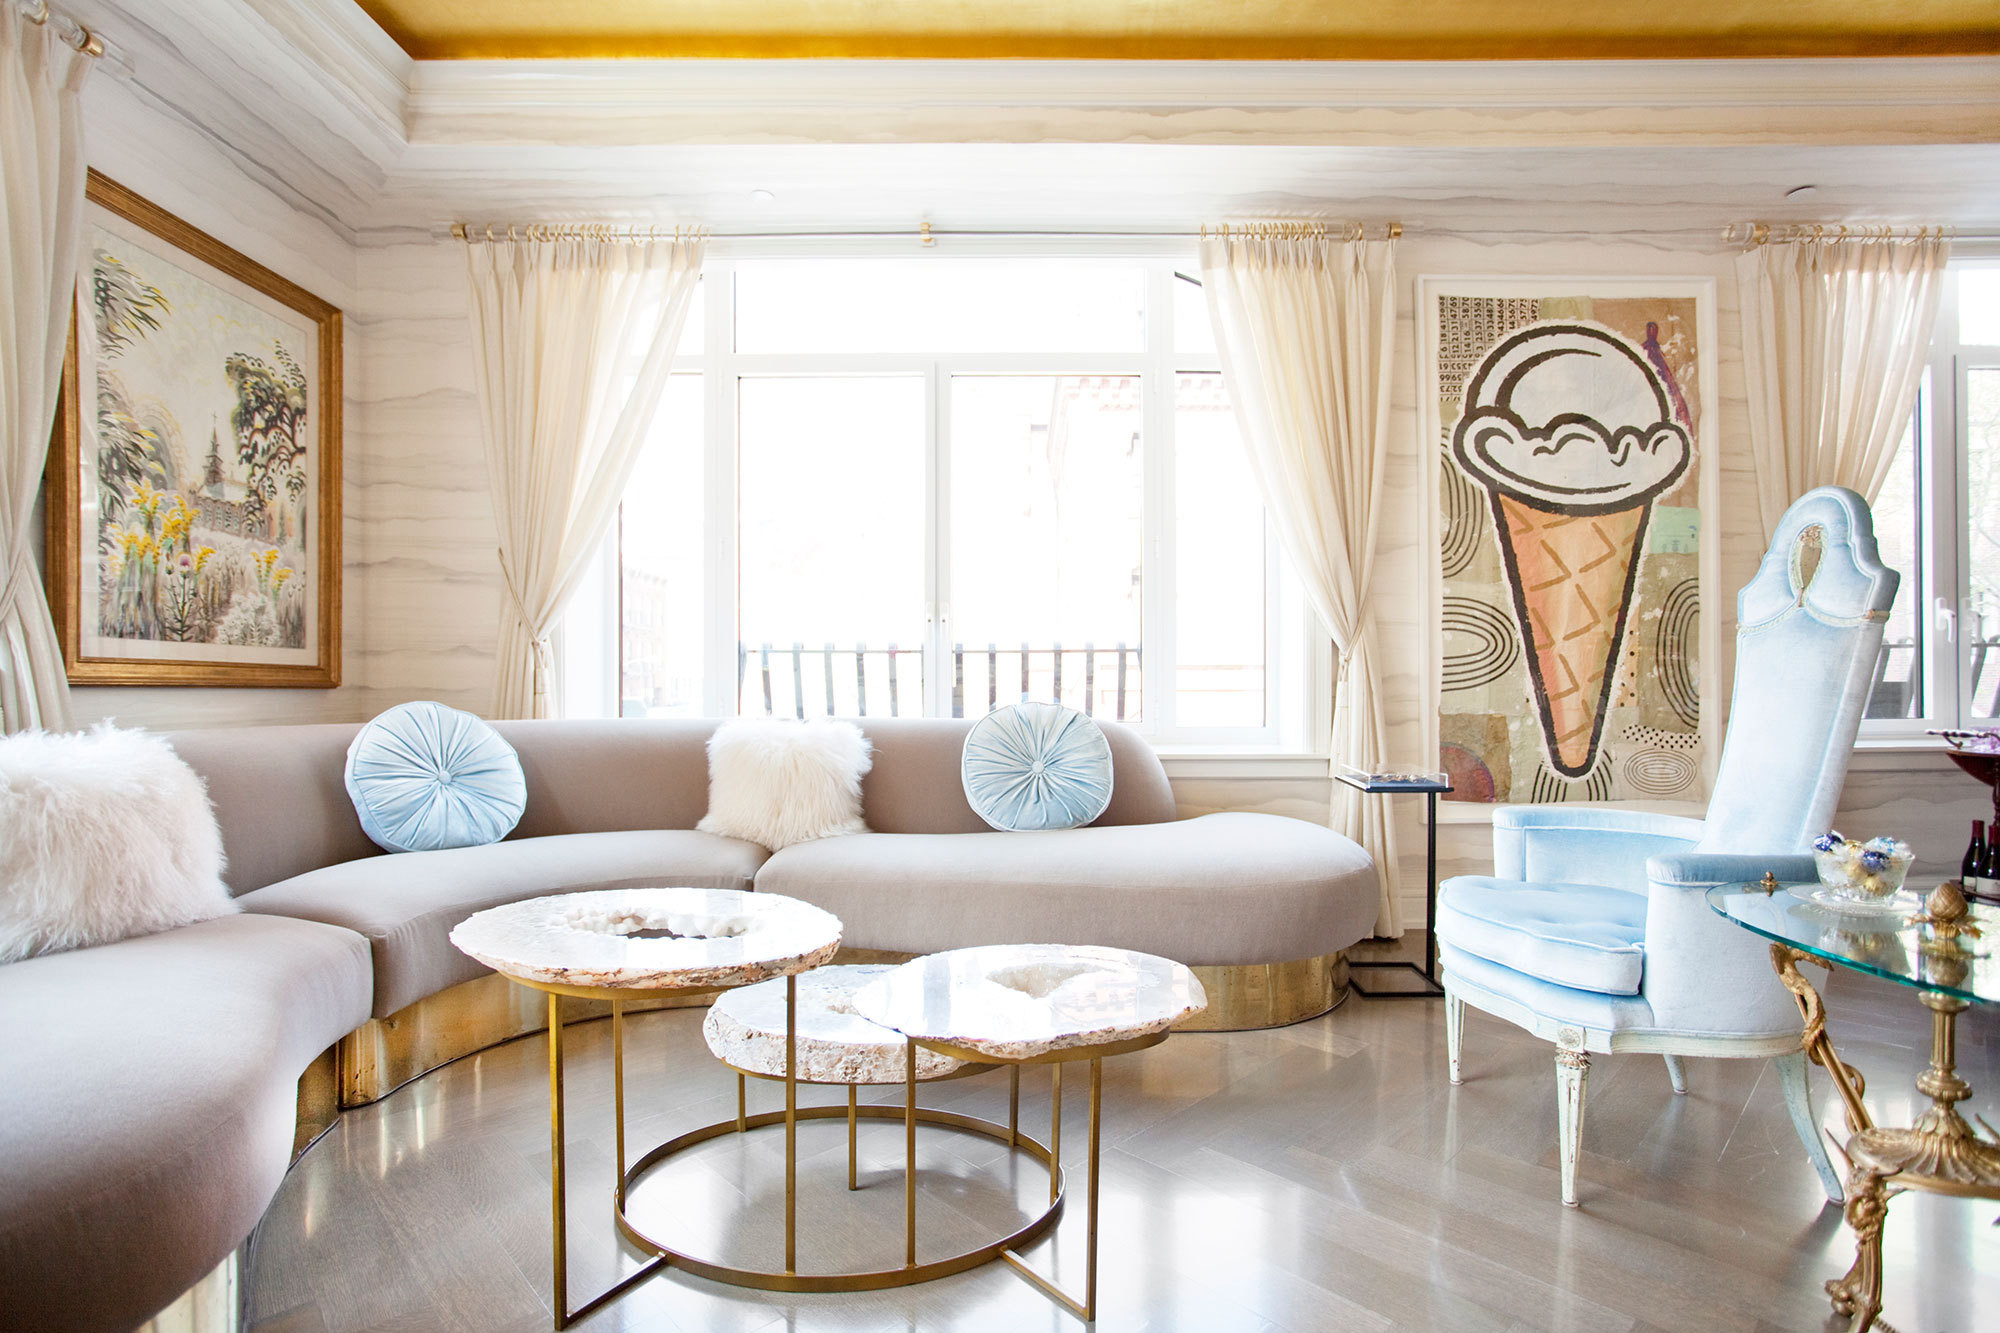 Gold-leaf ceilings in the living room preside over a Milo Baughman sectional, Dorothy Draper chairs, and a contemporary ice-cream cone painting by Donald Baechler.